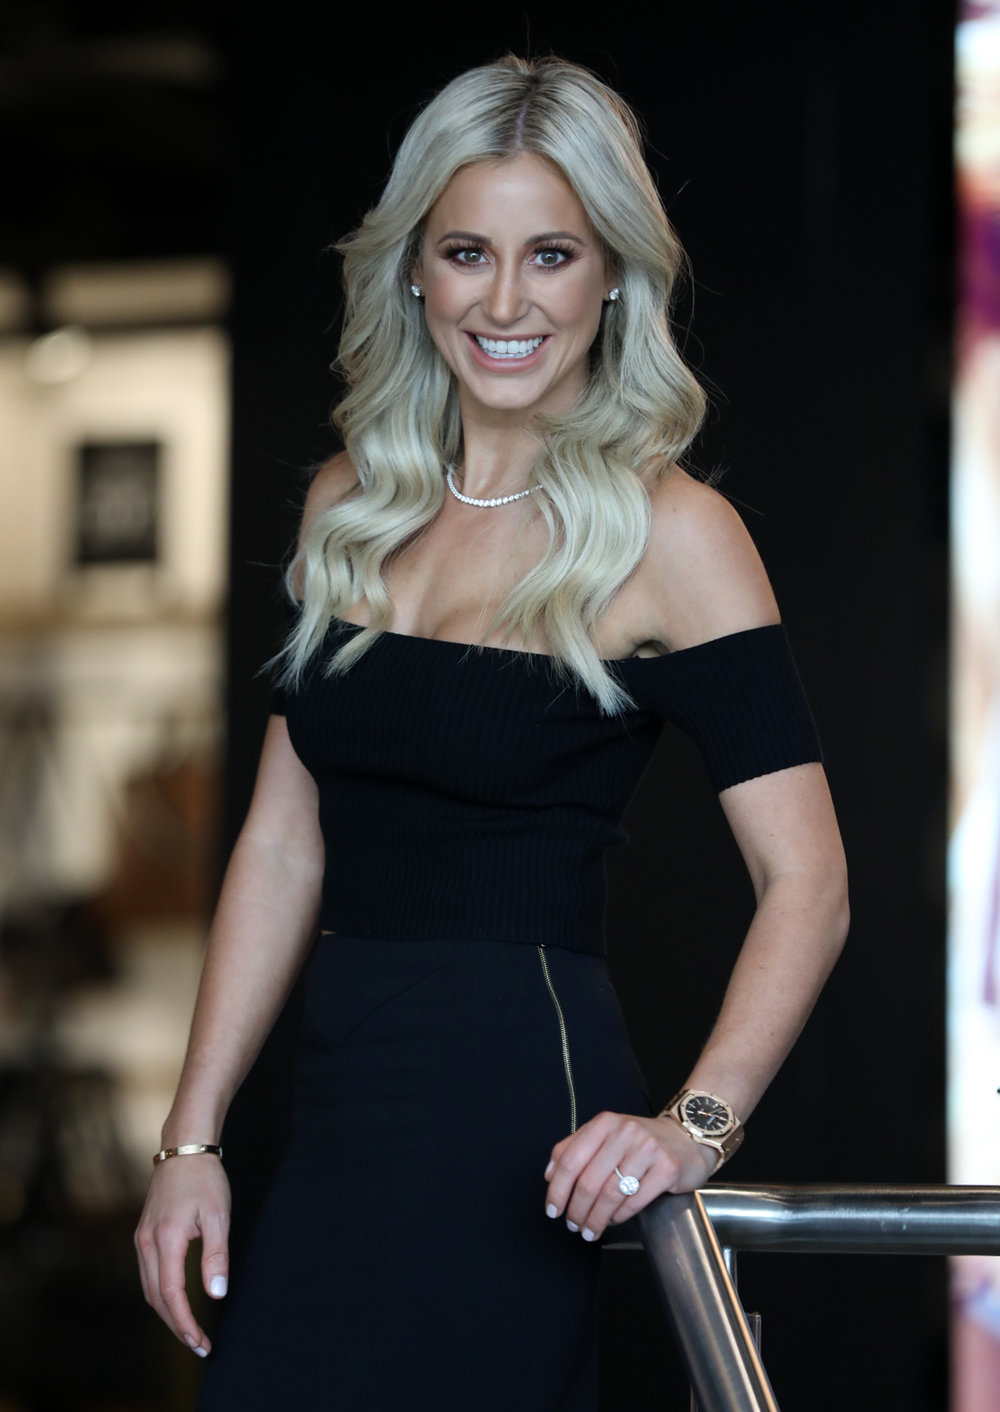 - ROXY JACENKO, founder and director of Sweaty Betty PR, The Ministry of Talent, Social Union and Pixie's Bows, brand ambassador and speaker